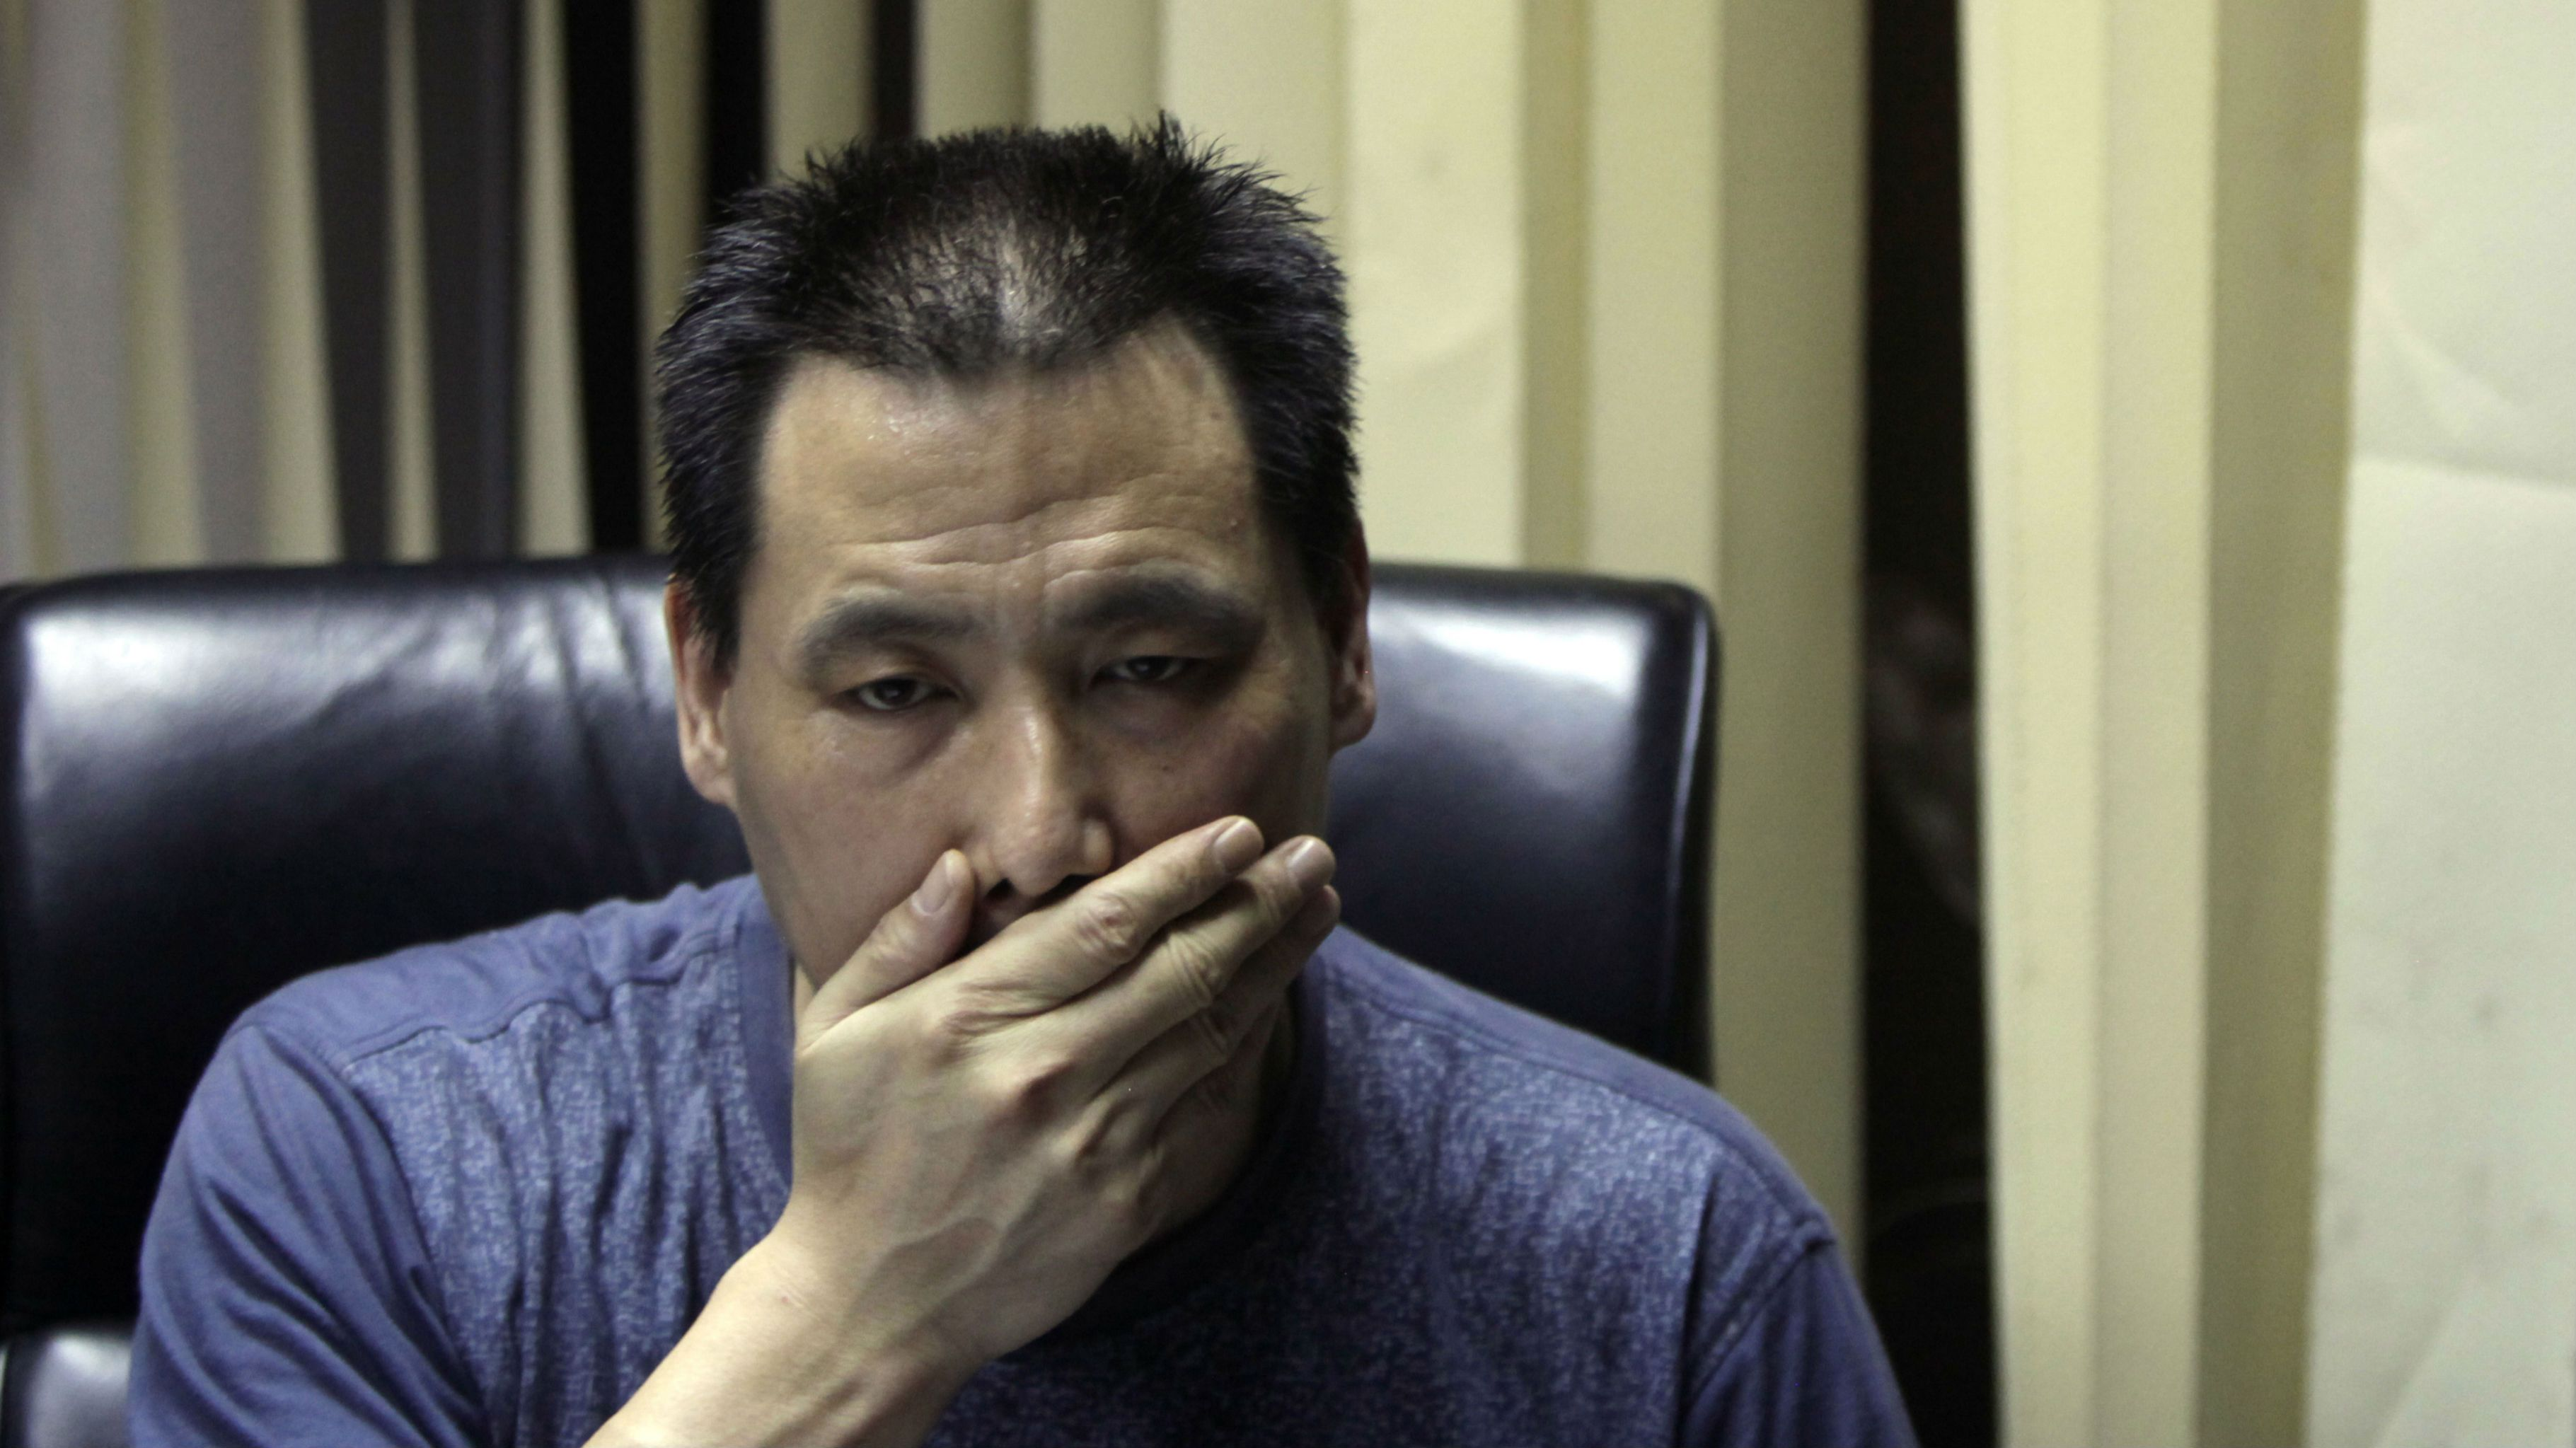 In this photo taken Wednesday, June 30, 2010, Chinese attorney Pu Zhiqiang wipes his mouth during an interview at his office in Beijing, China. Police on Friday, June 13, 2014 formally arrested the rights lawyer who is well known in China for his efforts to defend free speech, abolish labor camps and publicize abuses by police and Communist Party officials. (AP Photo/Ng Han Guan)